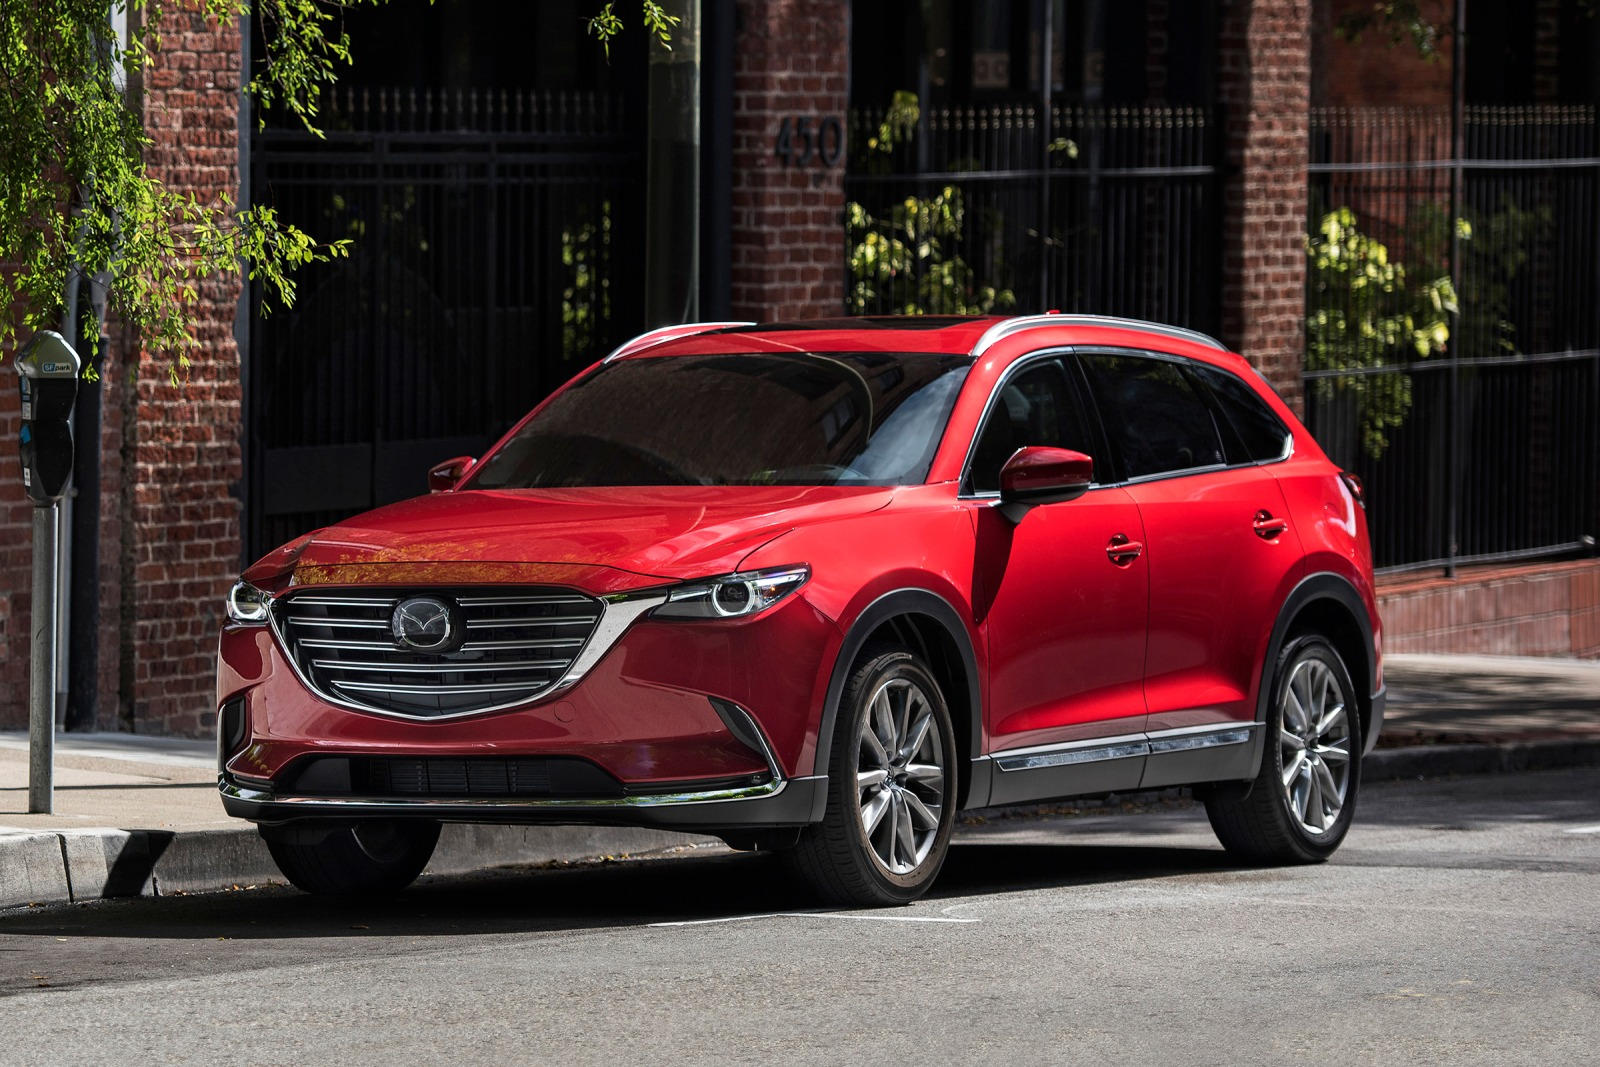 2018 Mazda CX-9 Review, Trims, Specs and Price - CarBuzz